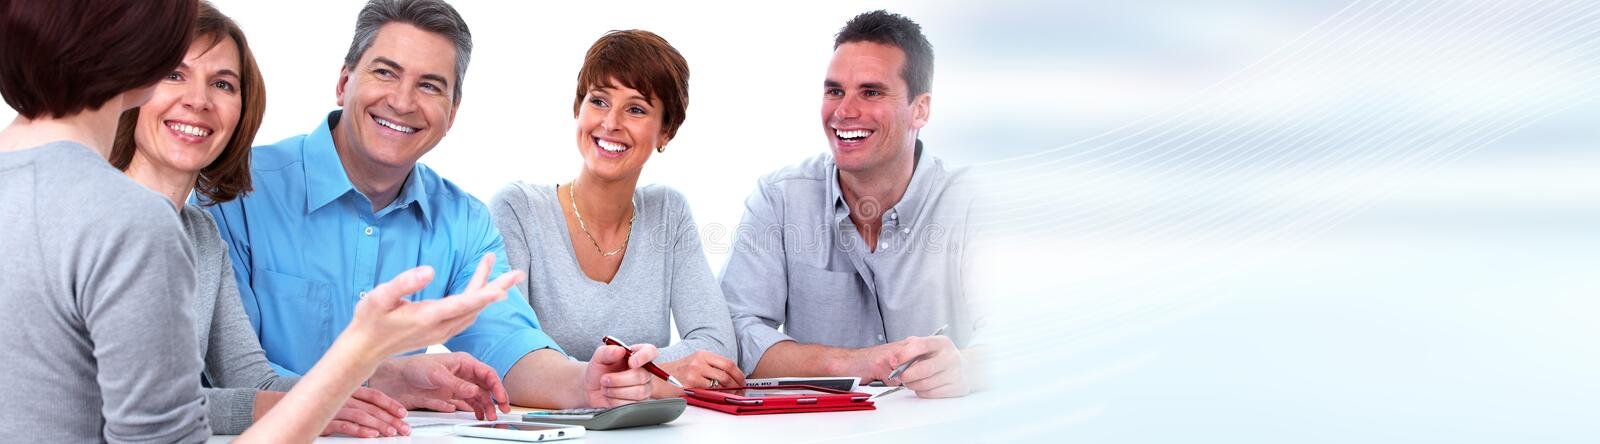 Business team. Business people group working. Financial service concept stock photo